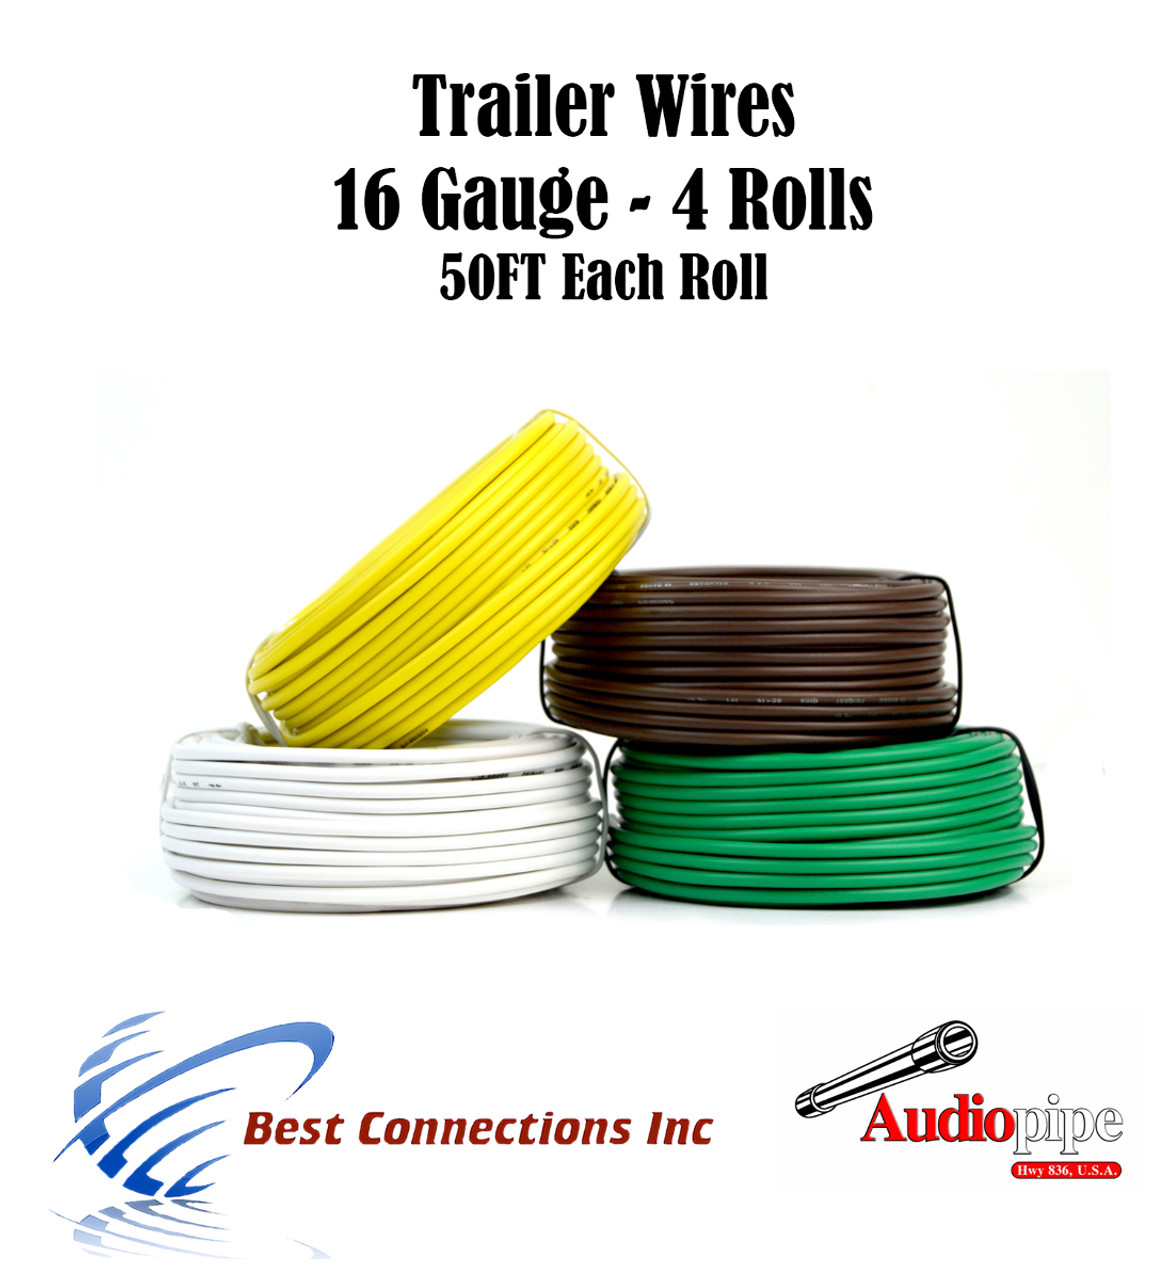 4 way trailer wire light cable for harness 50 ft each roll 16 gauge rh ocalapowersports com 2001 Chevrolet 2500 Dash Wiring Harness 4 Gauge Wire